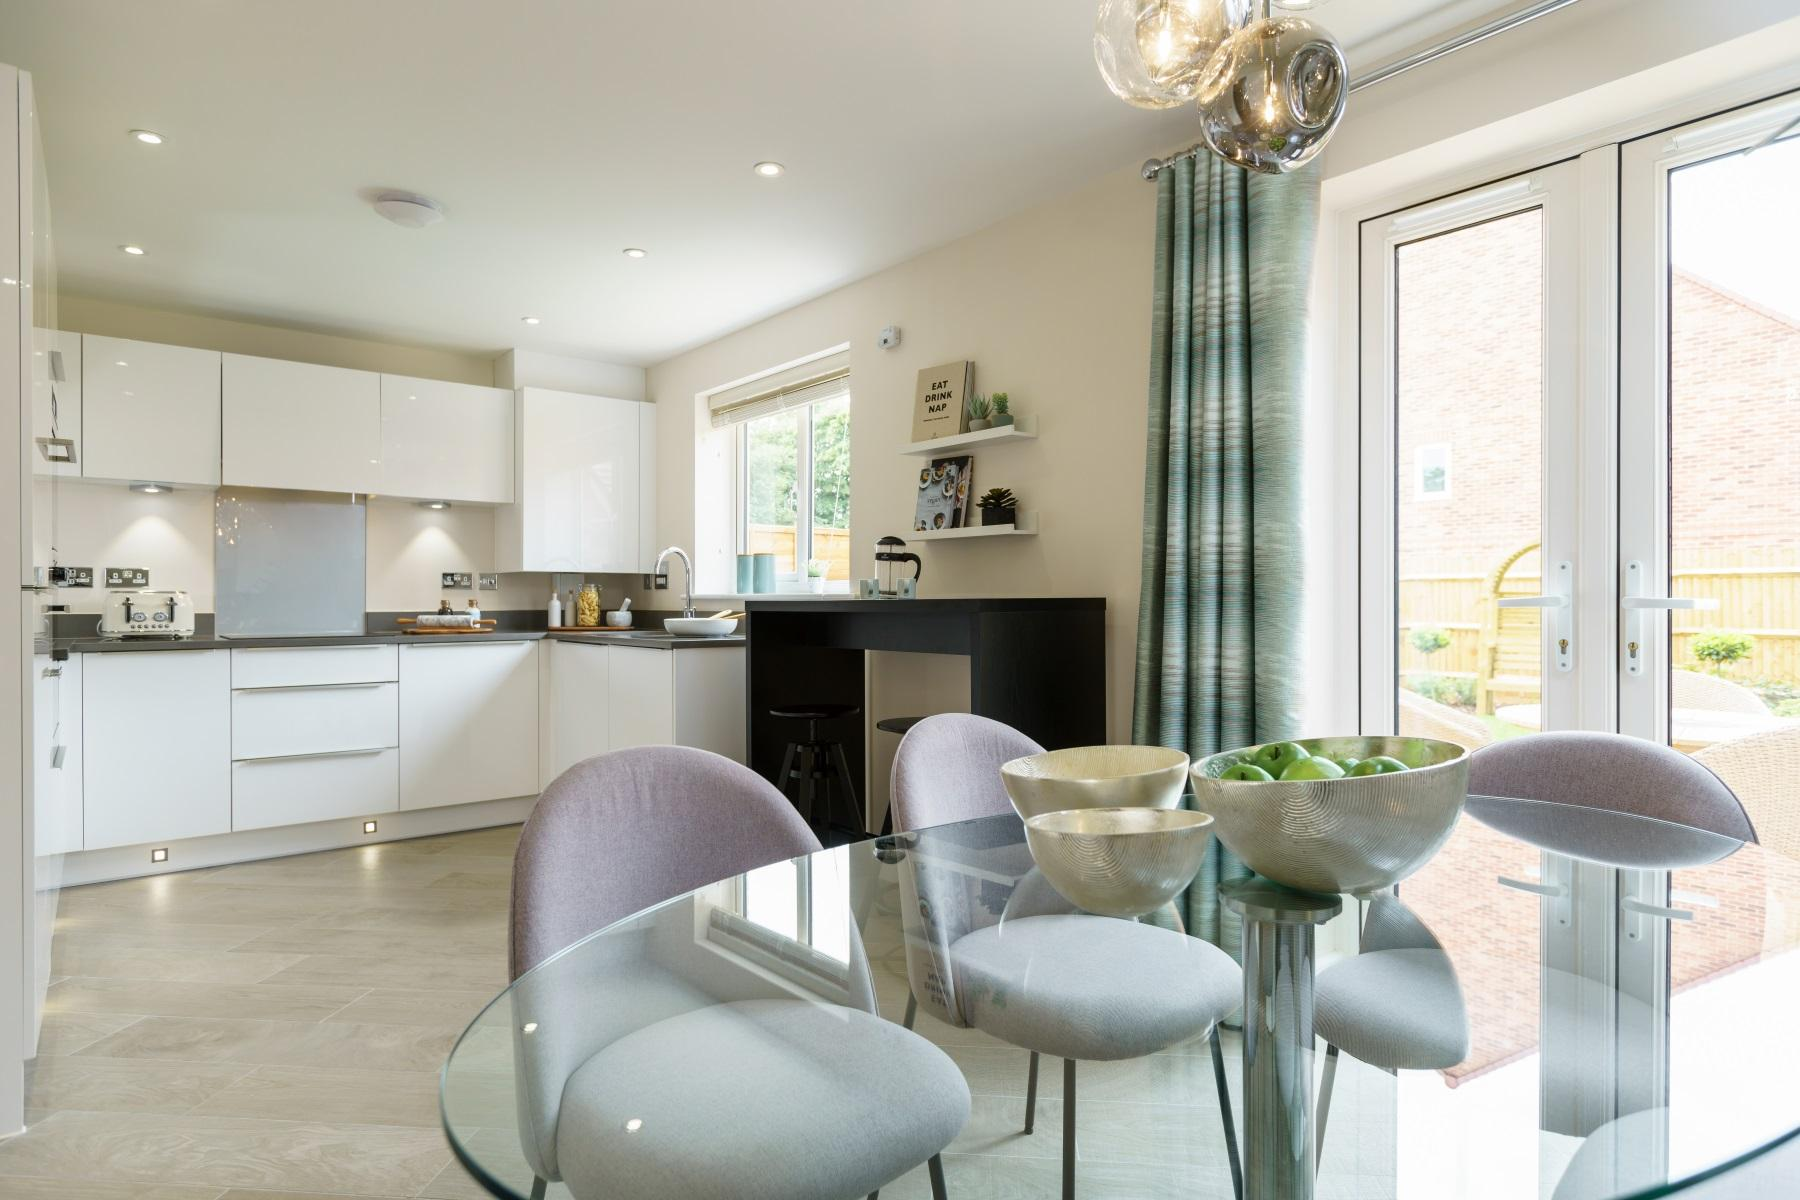 TW Exeter - Mayfield Gardens - Huxford example kitchen 2